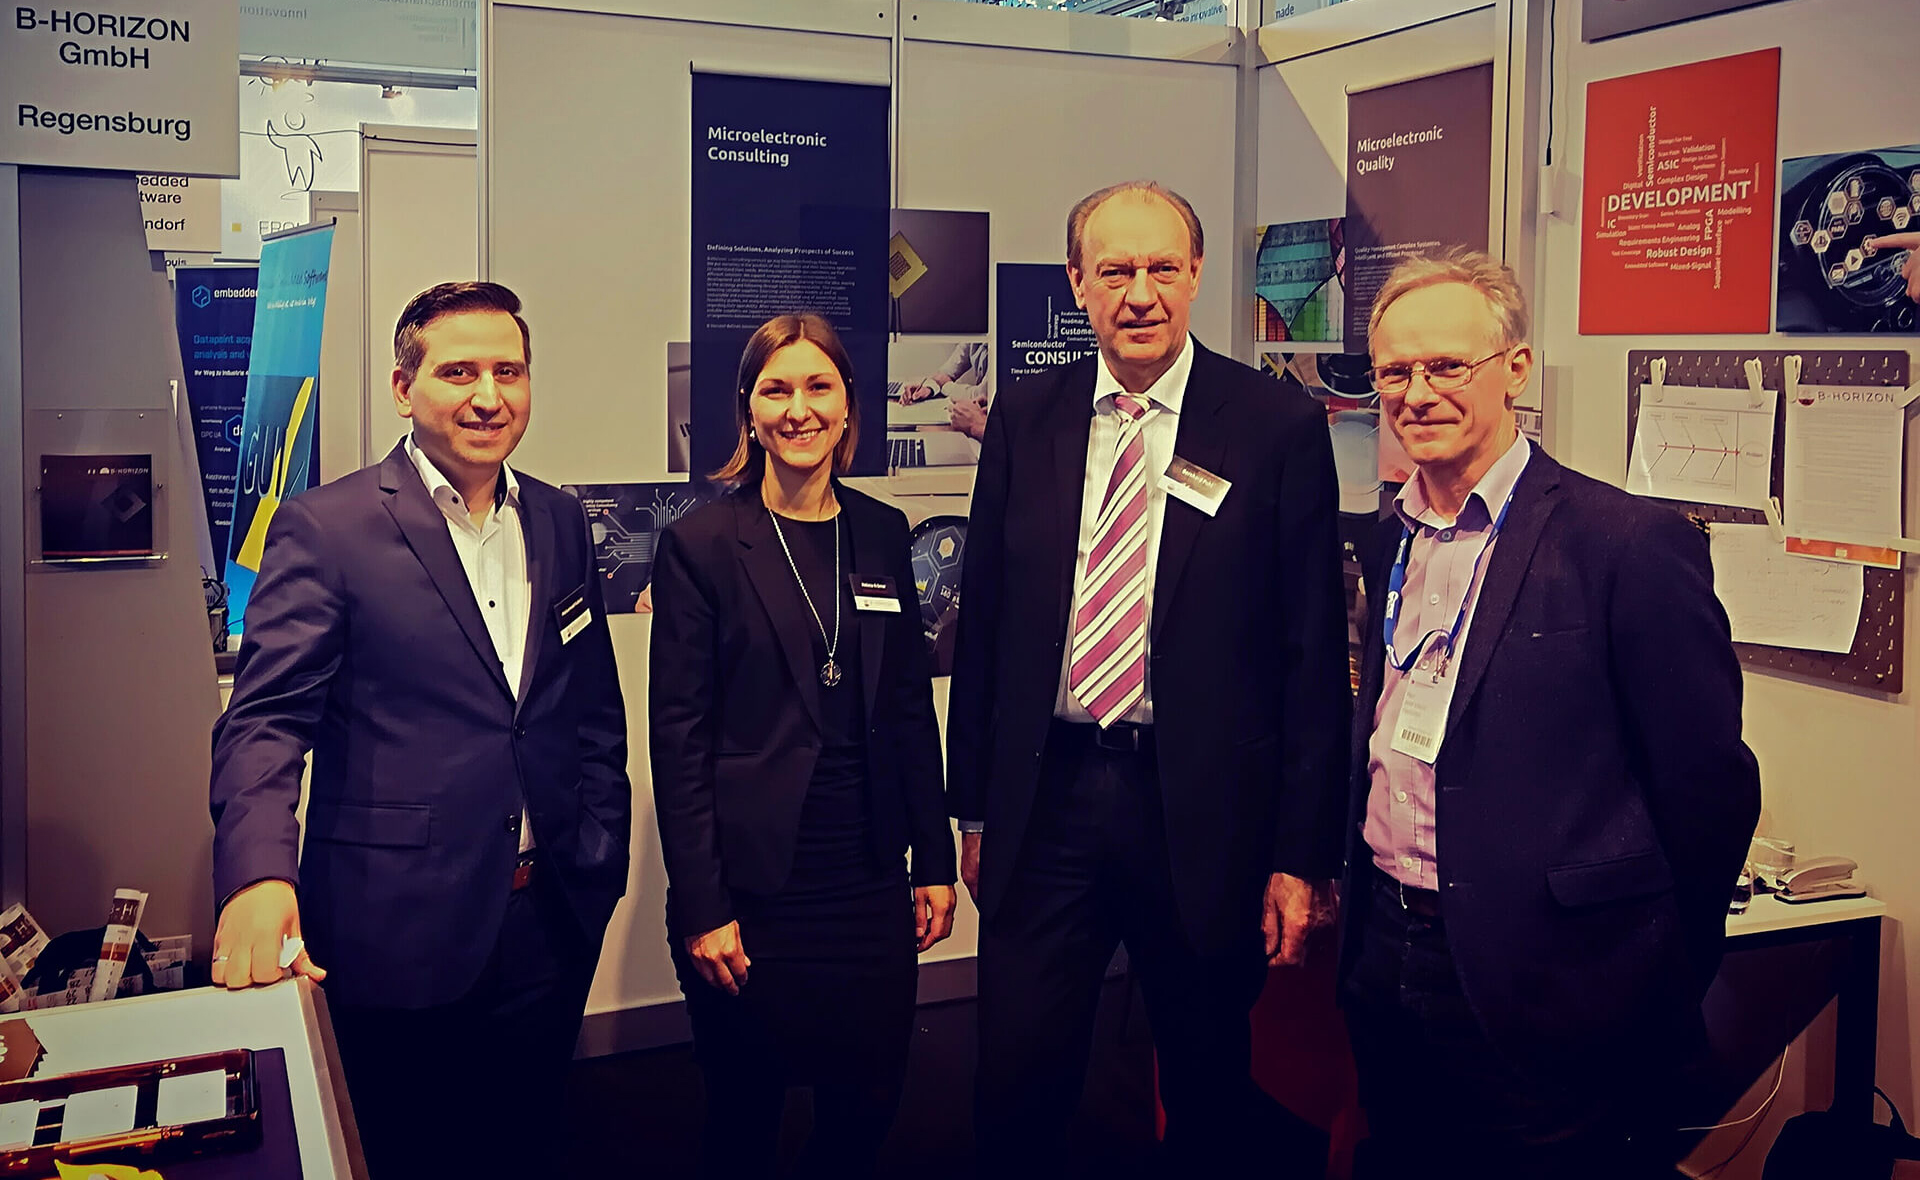 Group photo with founder and CEO Mohammad Kabany, Helena Krämer (Executive Management Assistant), Bernhard Pohl (Head of Quality Management) and Josef Schmid (Engineer at iSyst Intelligente Systeme GmbH) in front of their booth at the Embedded World in Nürnberg. B-Horizon's team presented their future-oriented business model in the growth market of the microelectronic industry to about 31.000 visitors.